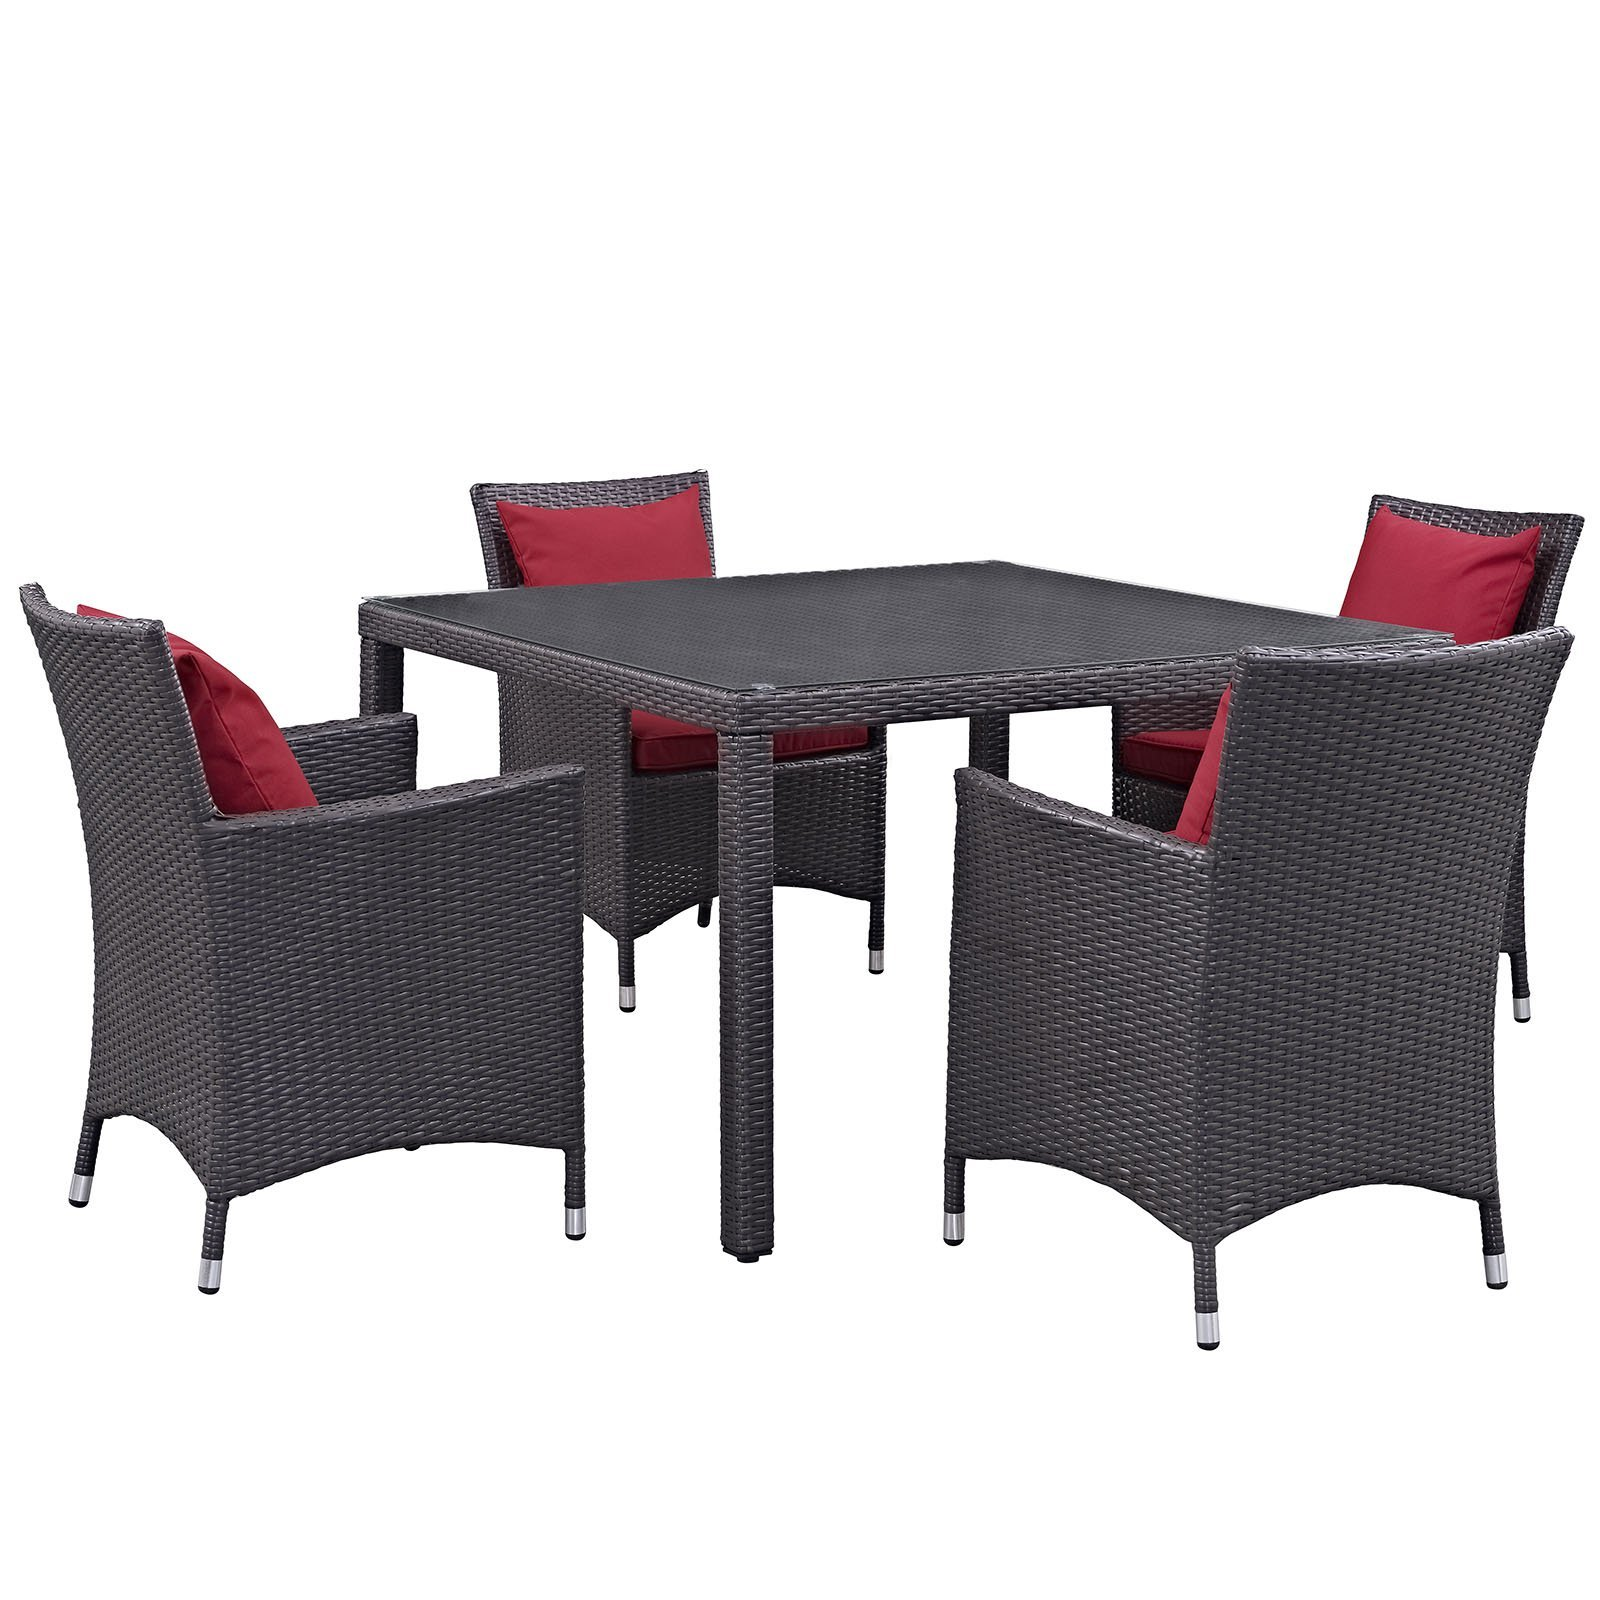 Convene 5 Piece Outdoor Patio Dining Set Espresso Red EEI-2191-EXP-RED-SET